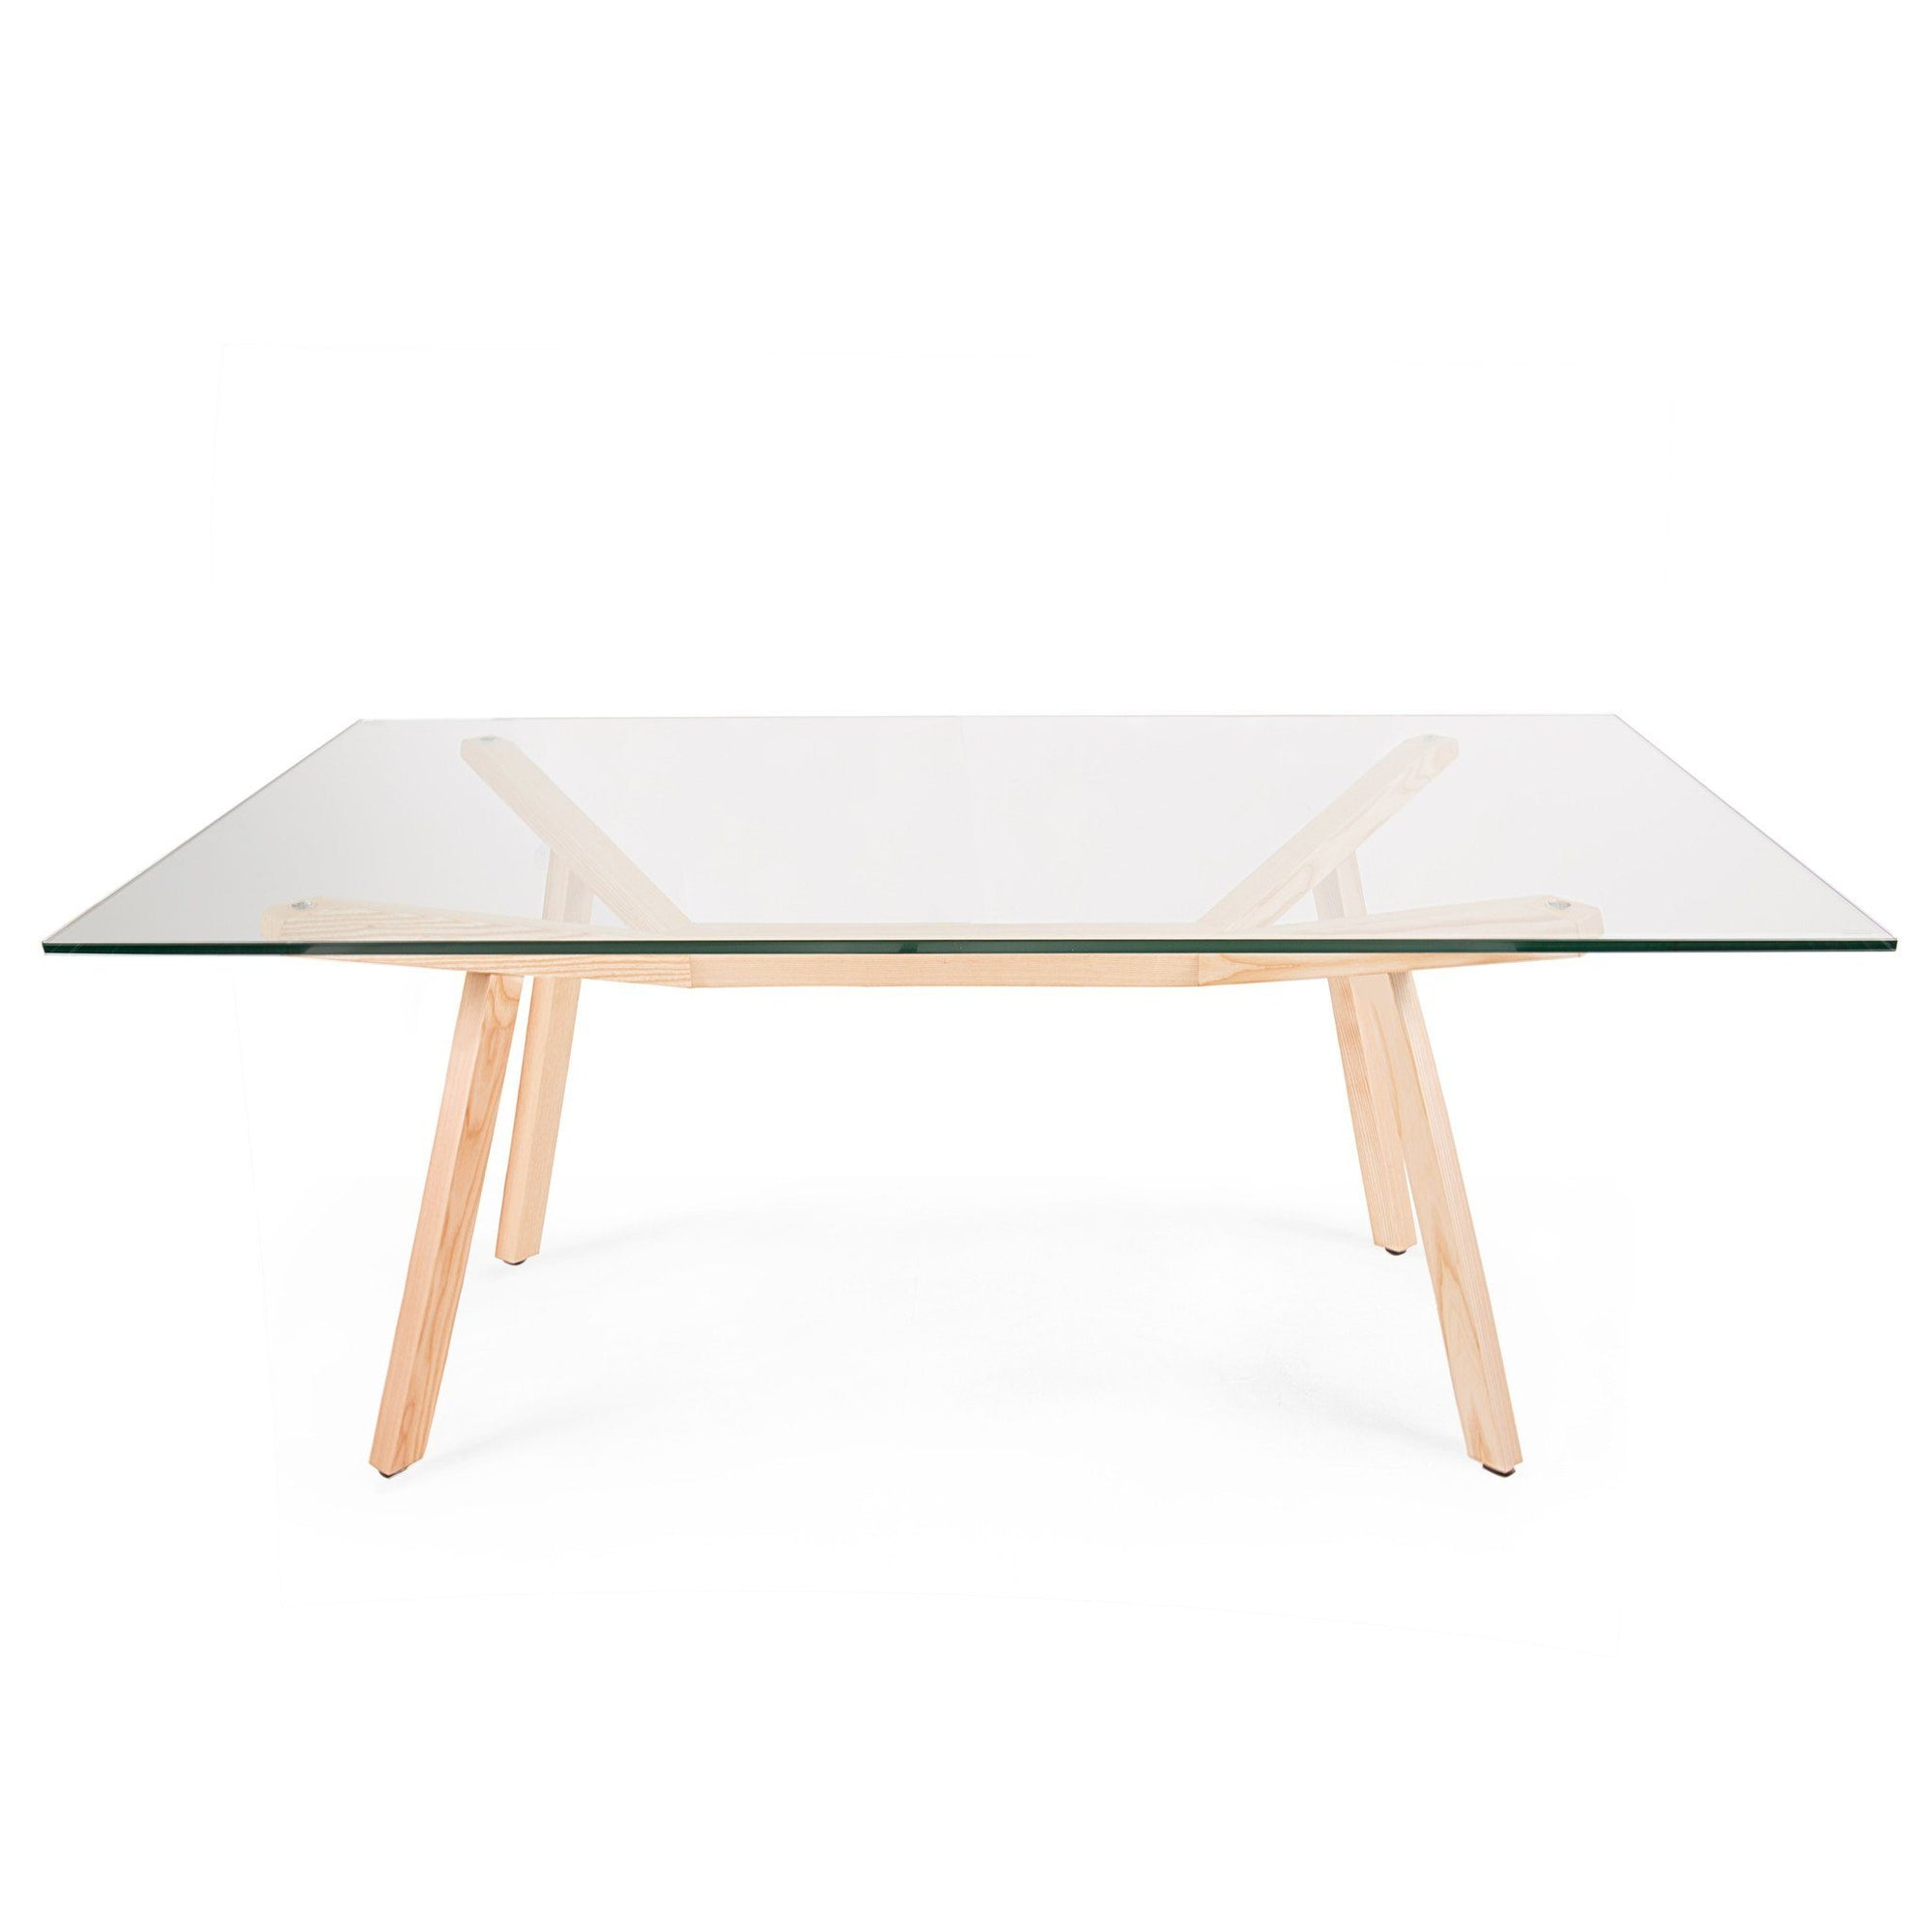 Sean Dix Style Forte Dining Table 180cm (Glass / Natural Ash Frame) - Nathan Rhodes Design